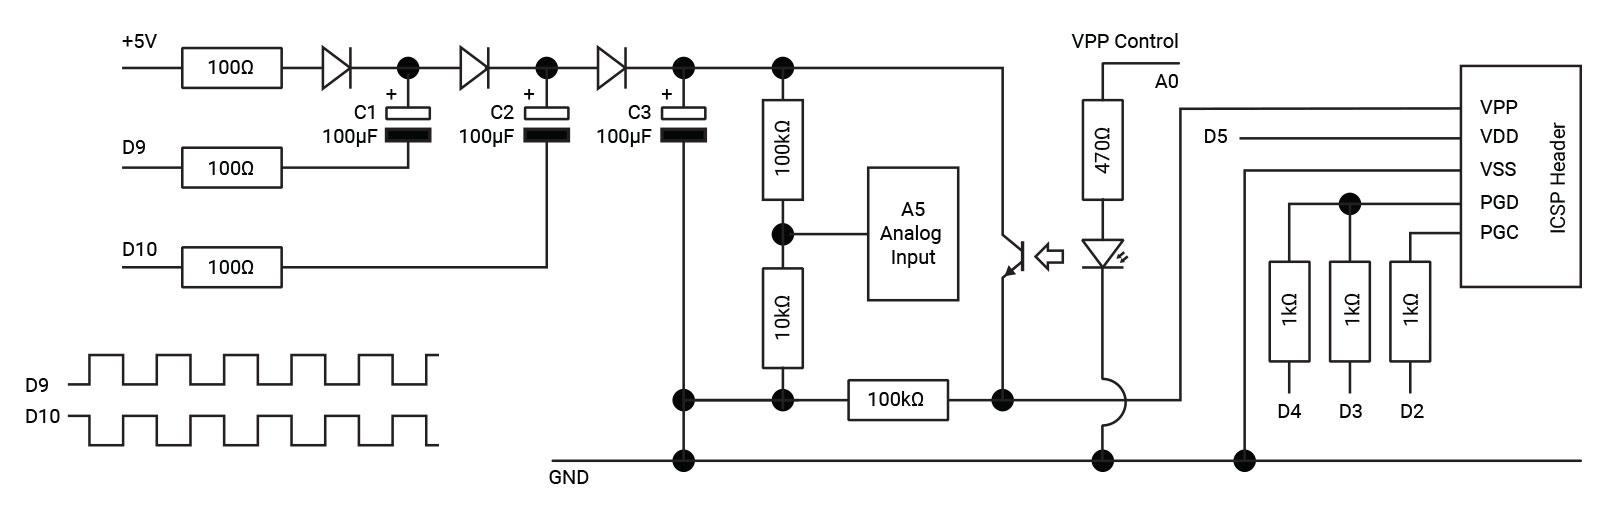 Arduino Pic Programmer Diyode Magazine The Form Below To Delete This Voltage Divider Circuit Diagram Build